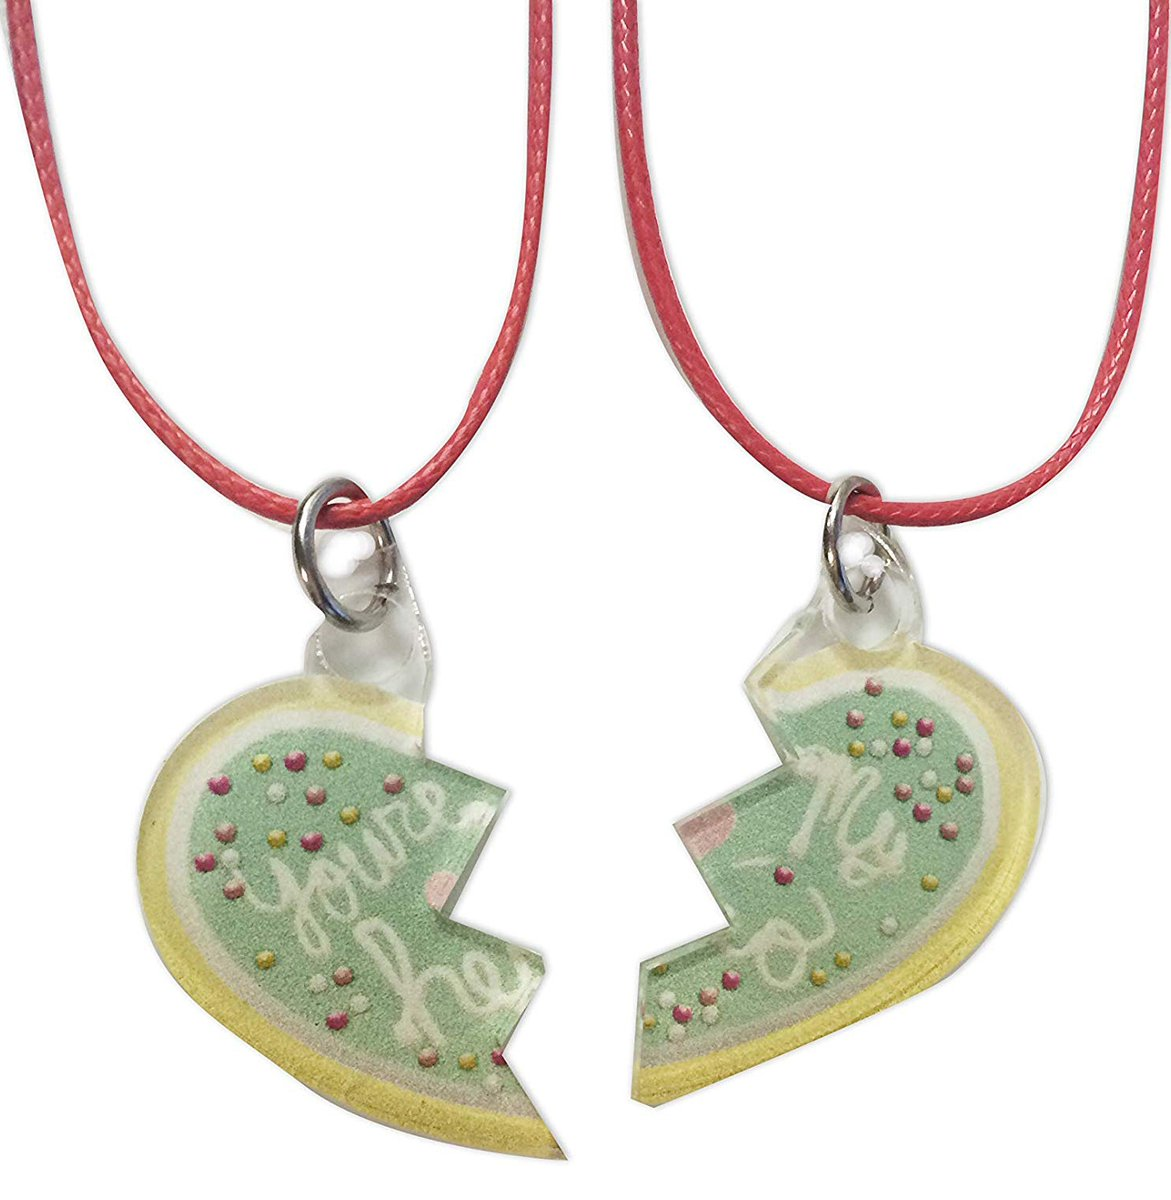 Share a special keepsake with YOUR hero using our You're My Hero Cookie Pendent Set!    #art #pendant #gift #gifts #pendants #design #jewelry #necklace #style #love #accessories #movie #sweet #wreckitralph #set #vanellope  #vanellopevonschweetz #sugarrush